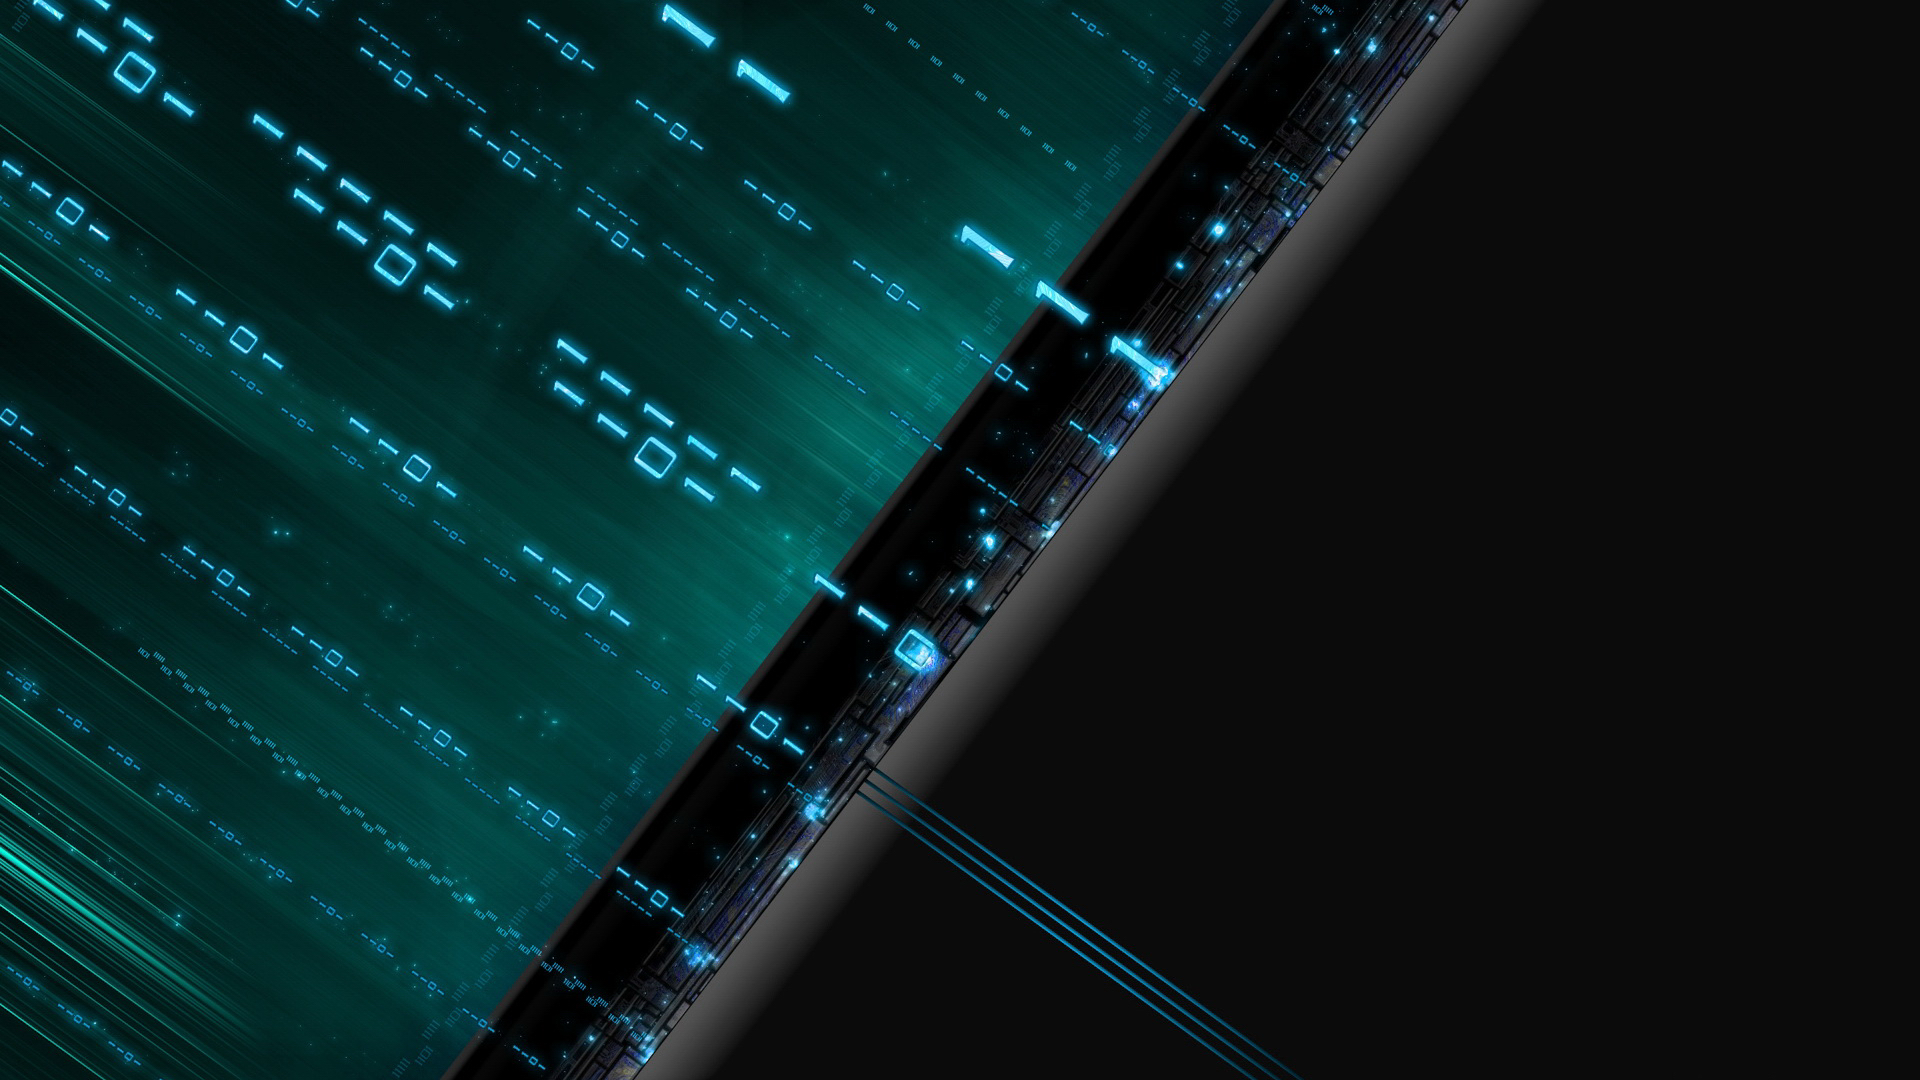 Binary Full HD Wallpaper And Background Image